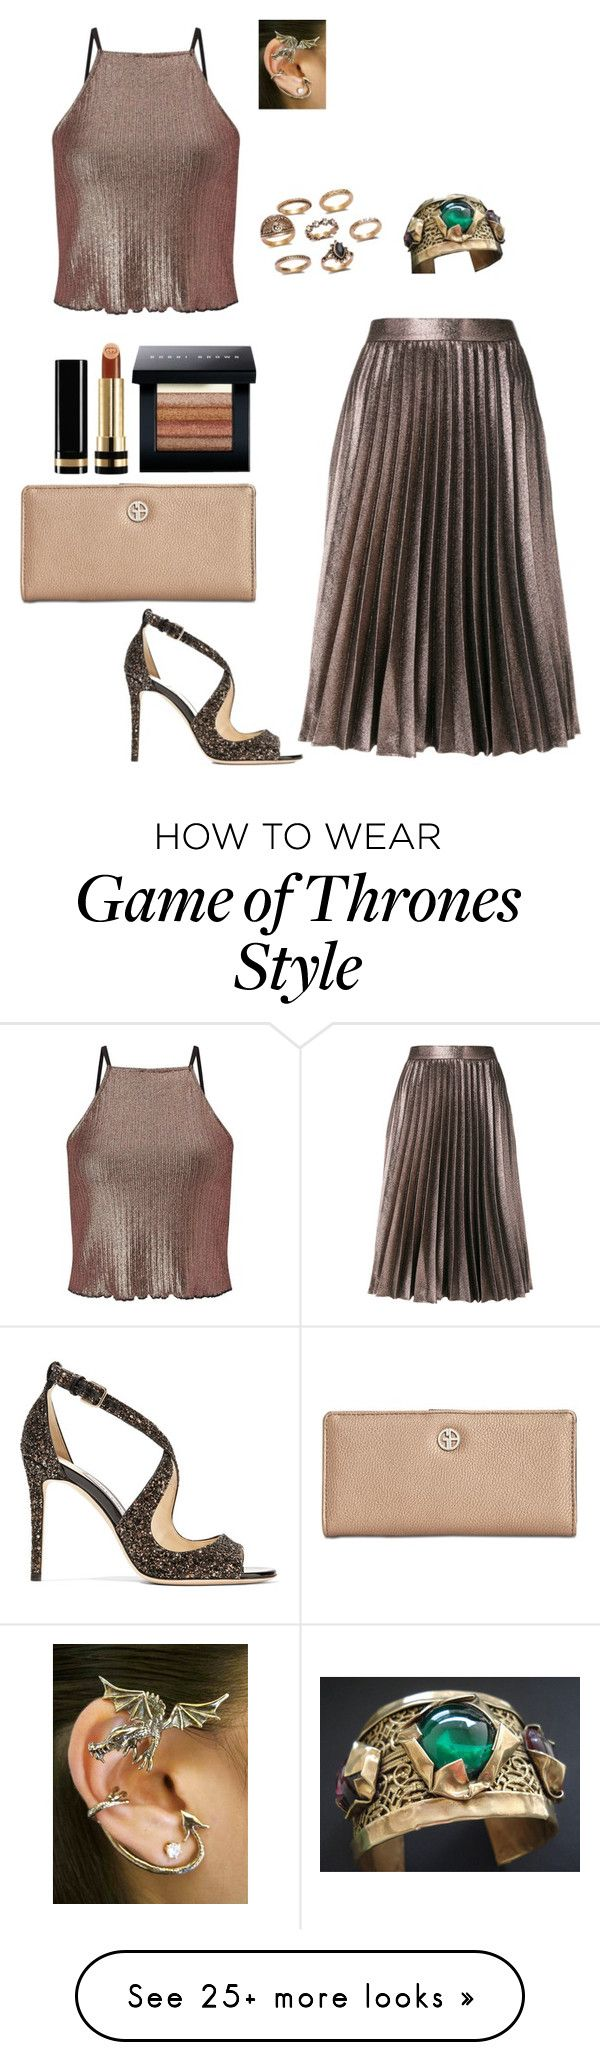 """""""bronze collection"""" by hermine-fragonn on Polyvore featuring Miss Selfridge, Roberto Collina, Jimmy Choo, Giani Bernini, Gucci and Bobbi Brown Cosmetics"""